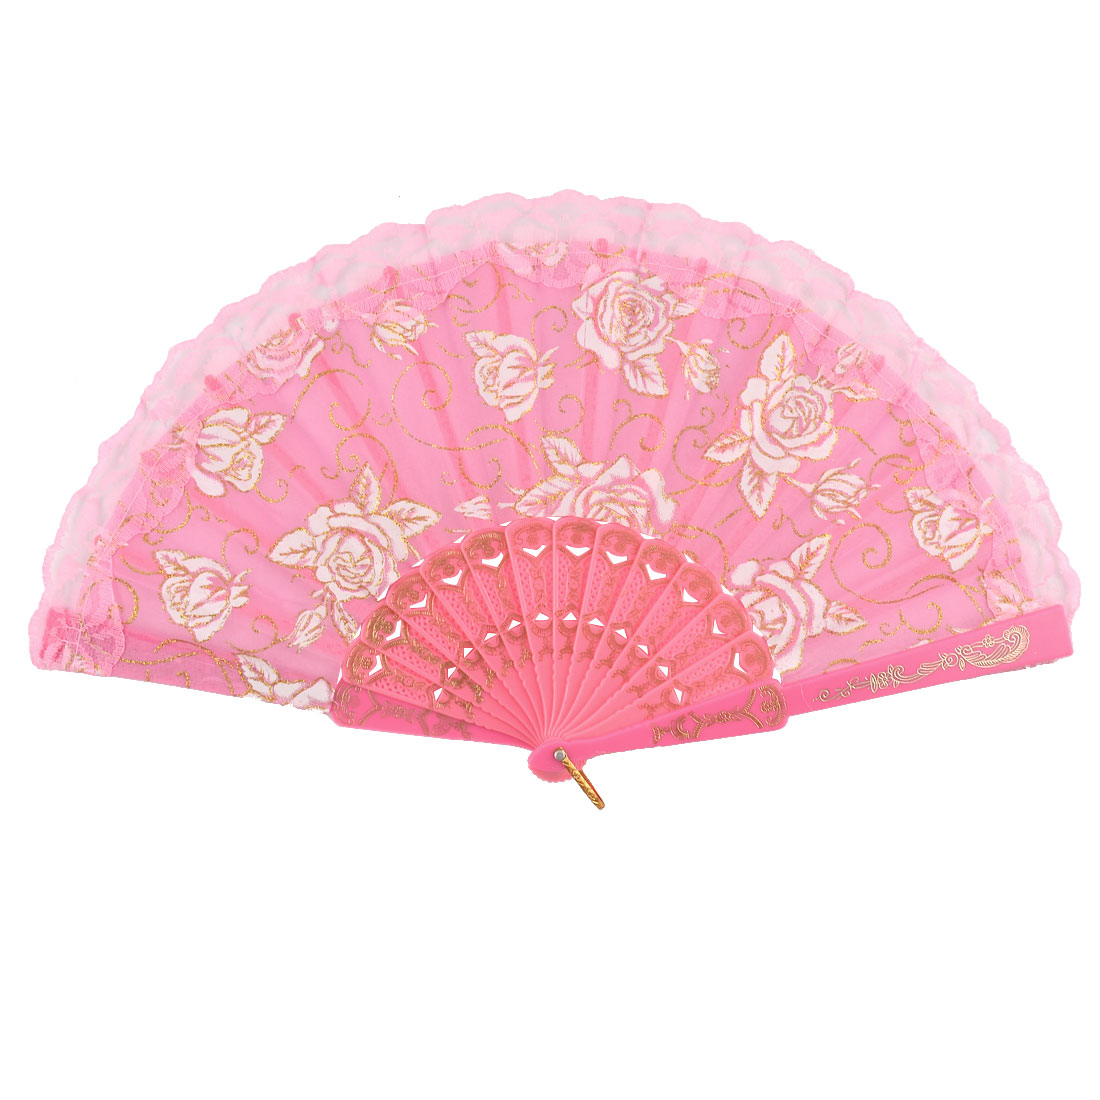 Dancing Wedding Party Fabric Chinese Style Rose Pattern Handy Folding Fan Pink